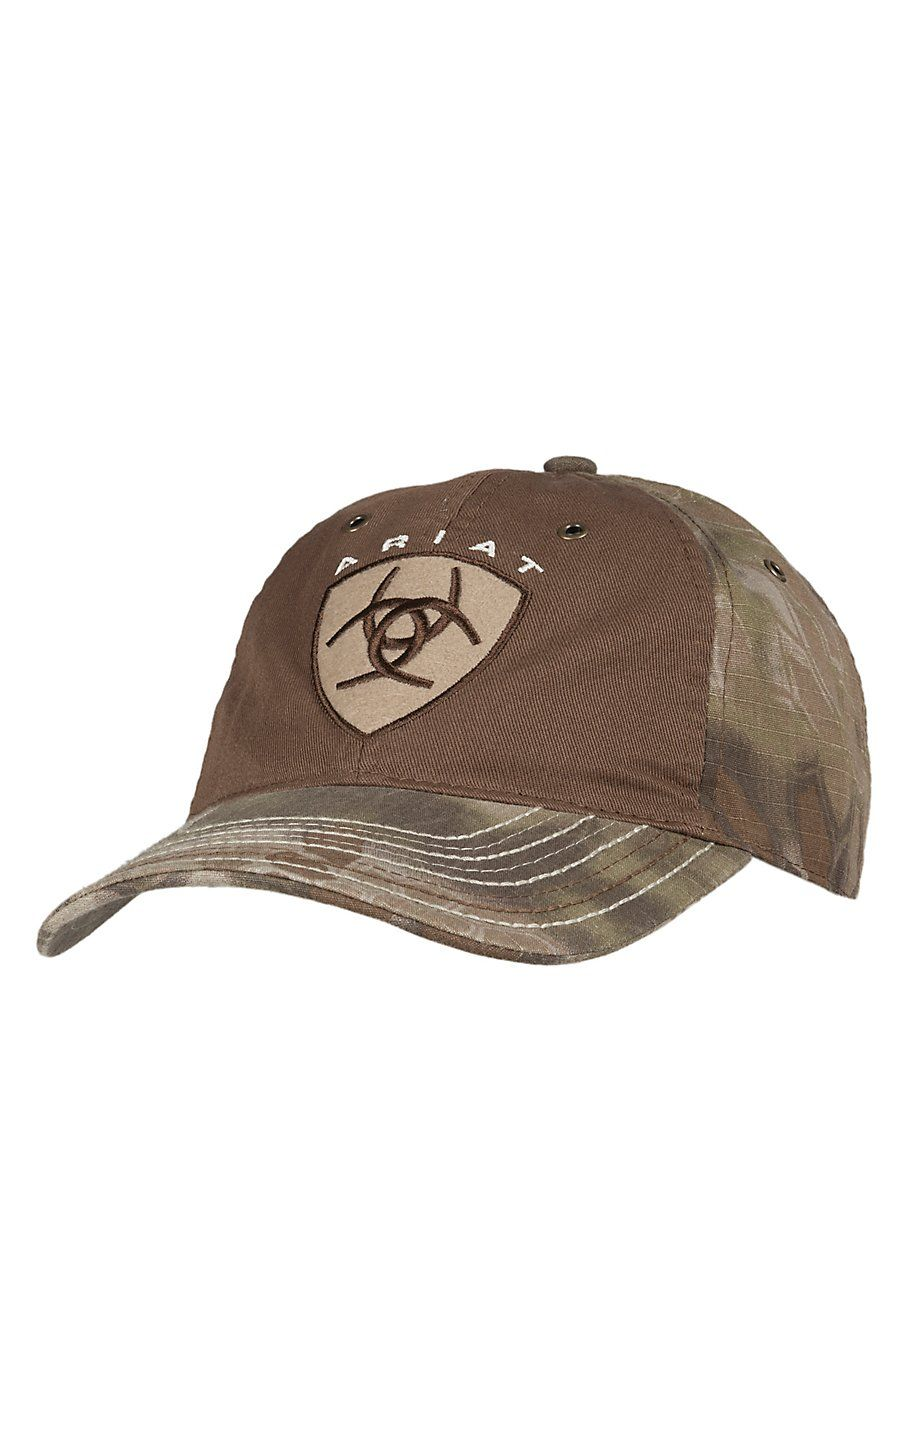 Ariat Brown   Kryptek Camo with Embroidered Logo Cap Gorras 2ad8b8fb609